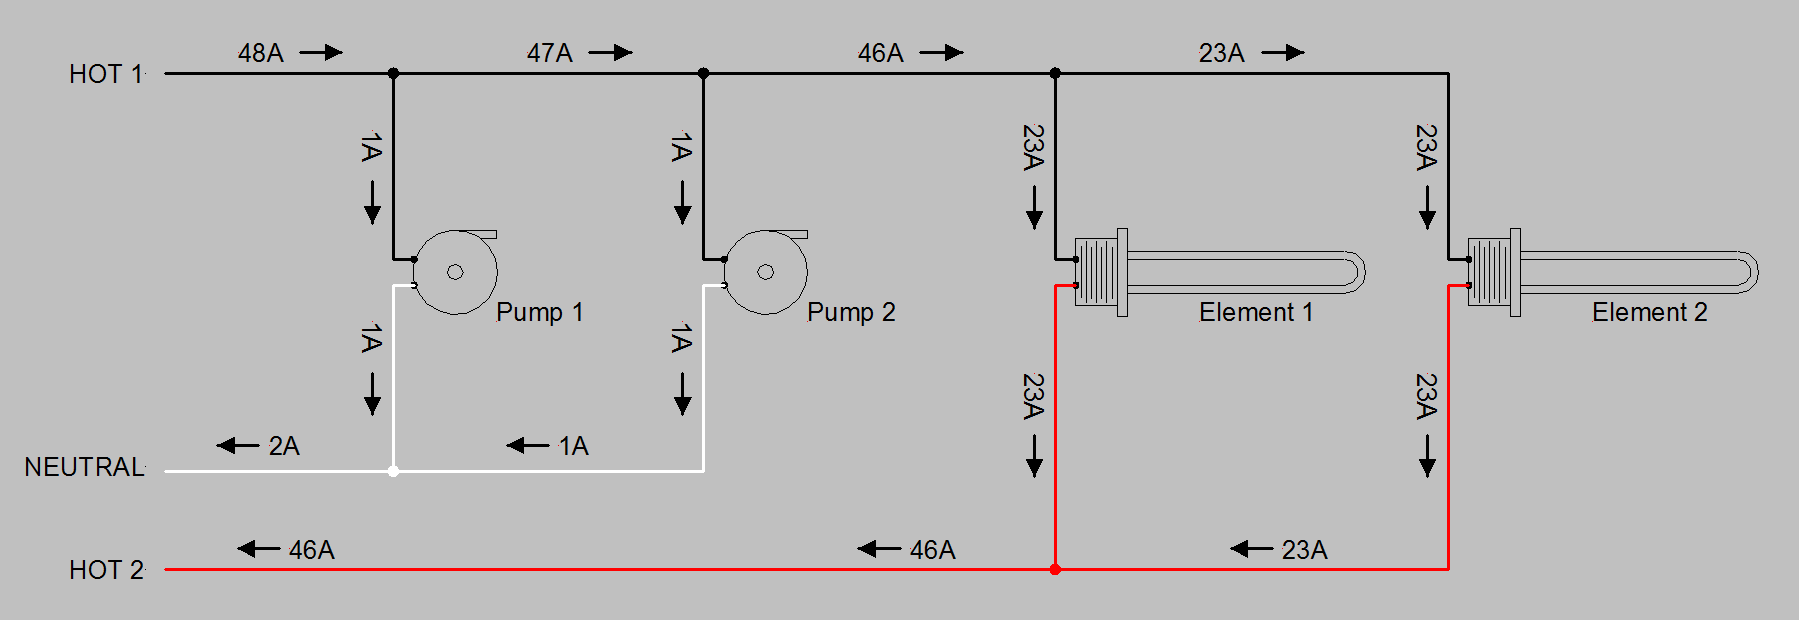 hight resolution of placement of ct donut on 50 amp panel homebrewtalk com beer lifan 200cc wiring diagram donut ct wiring diagram